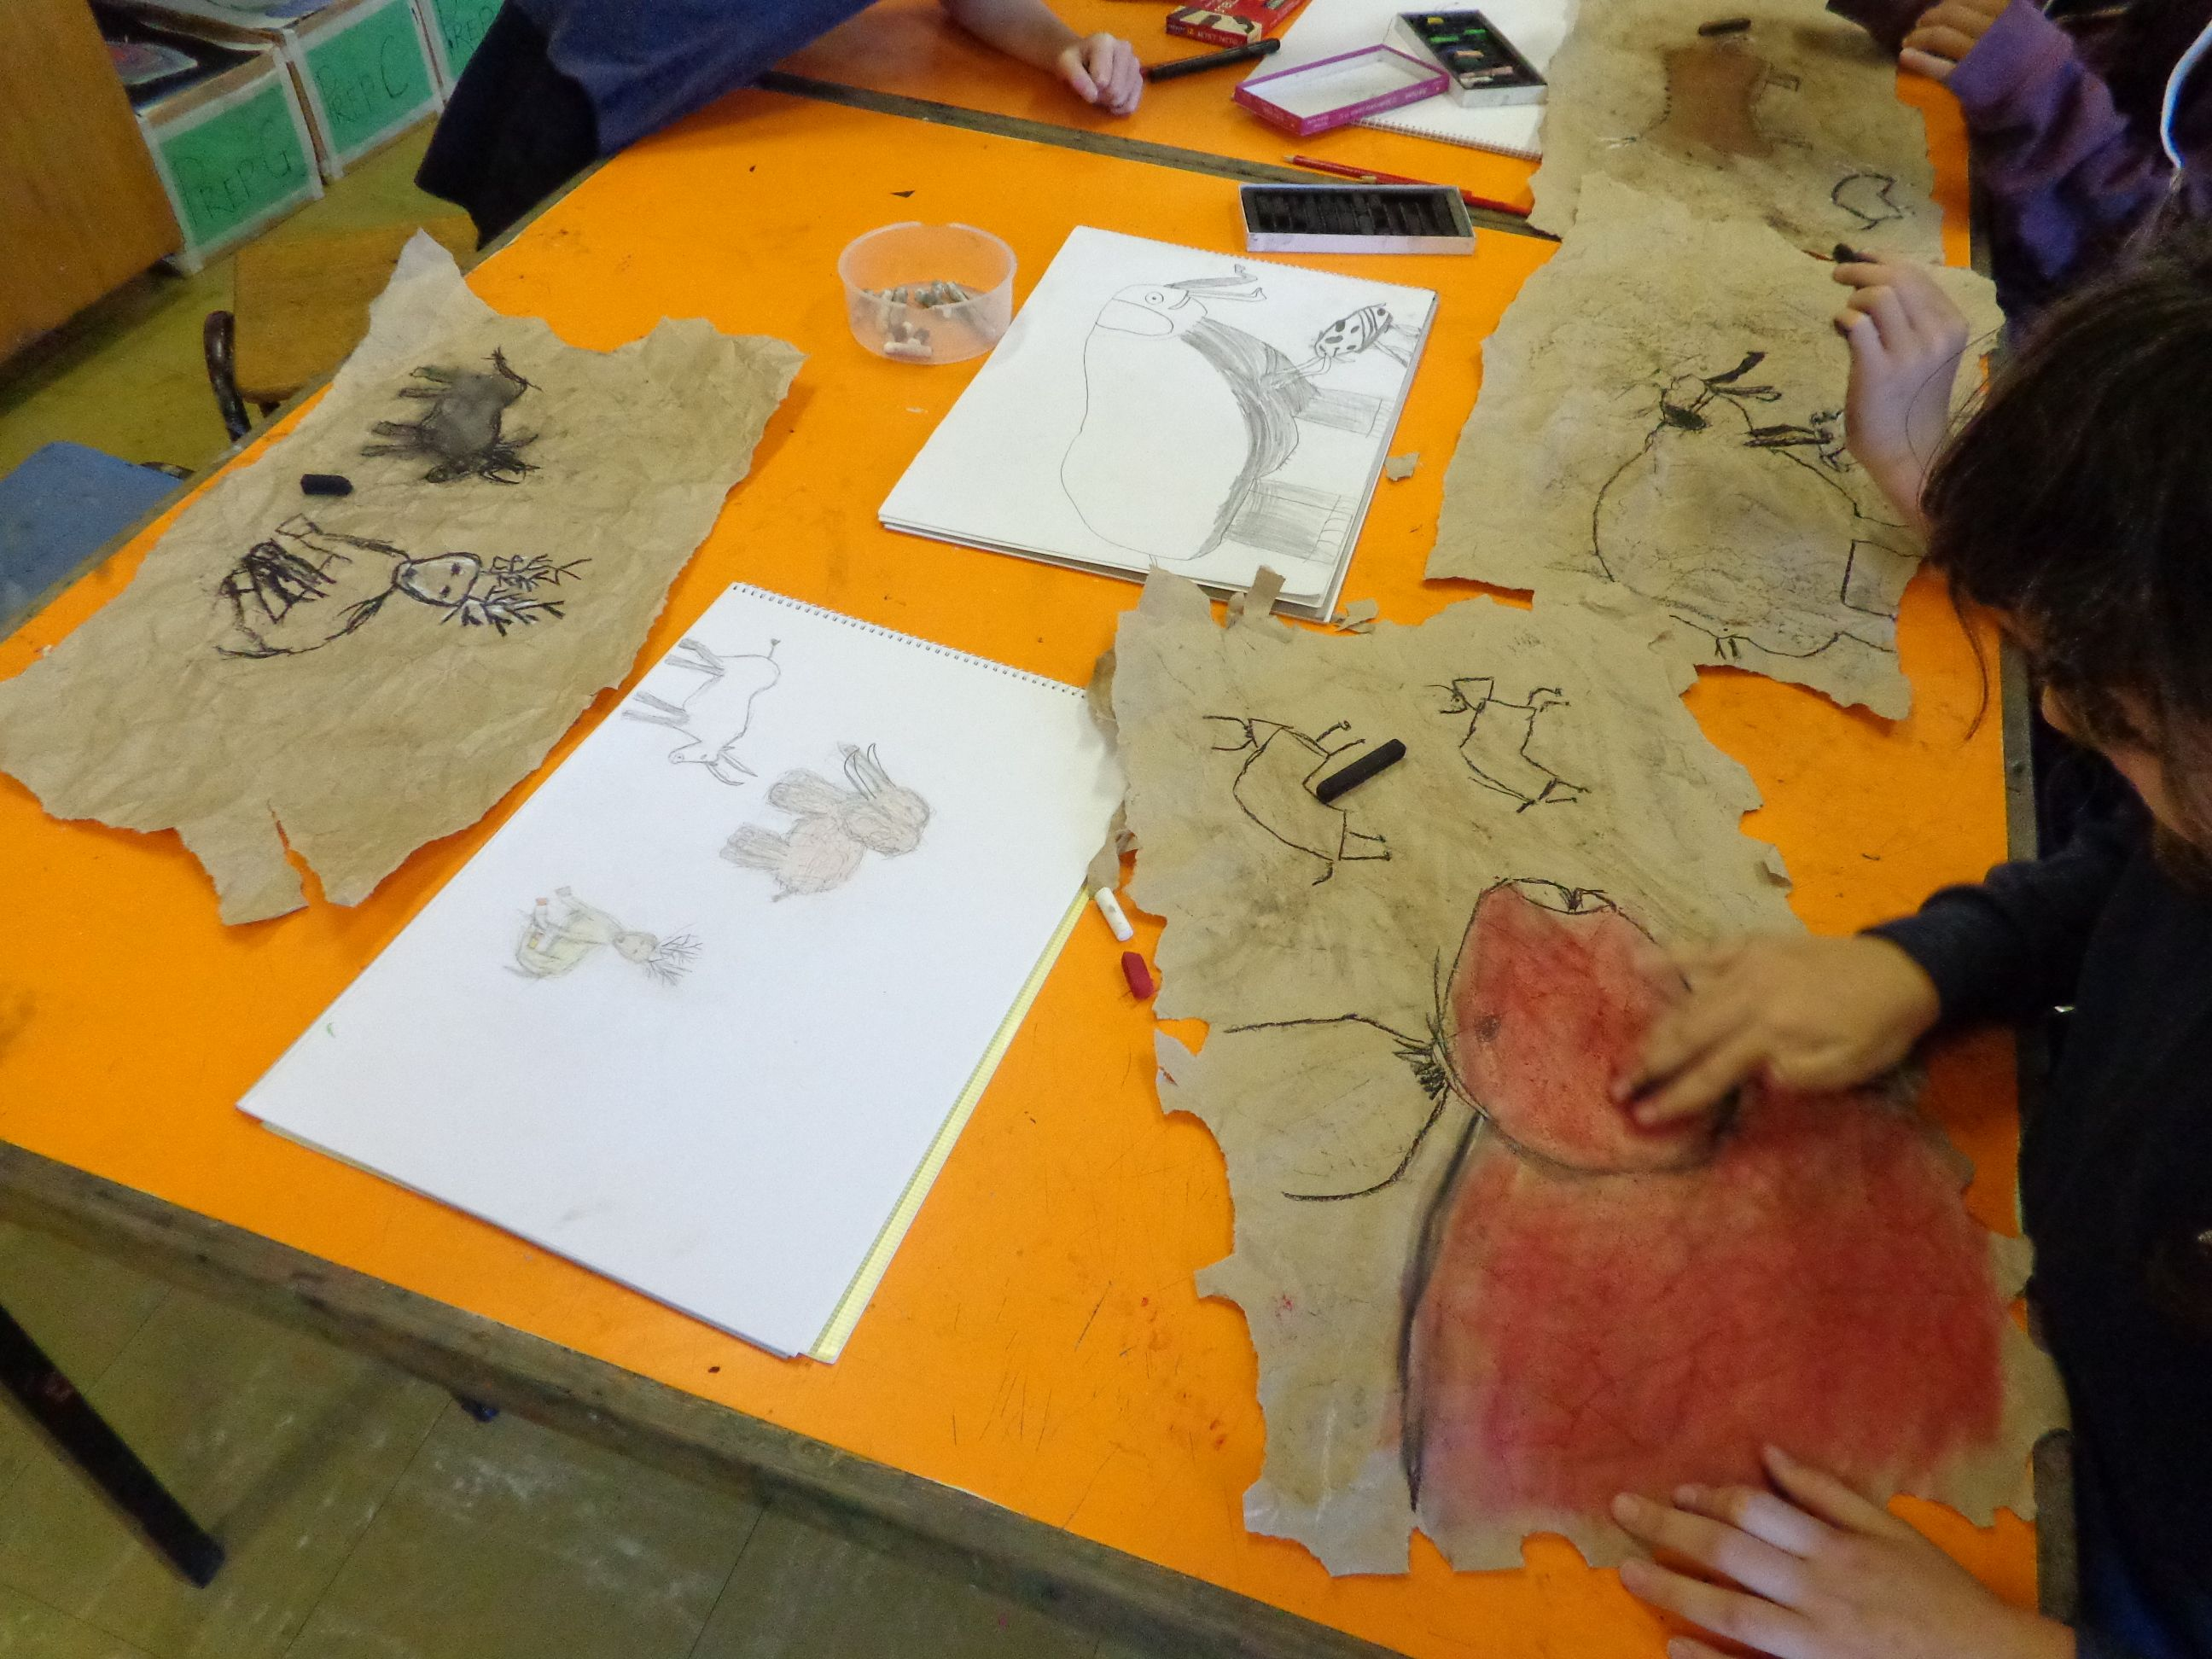 Lascaux cave drawings with my Grade 5 and 6 students